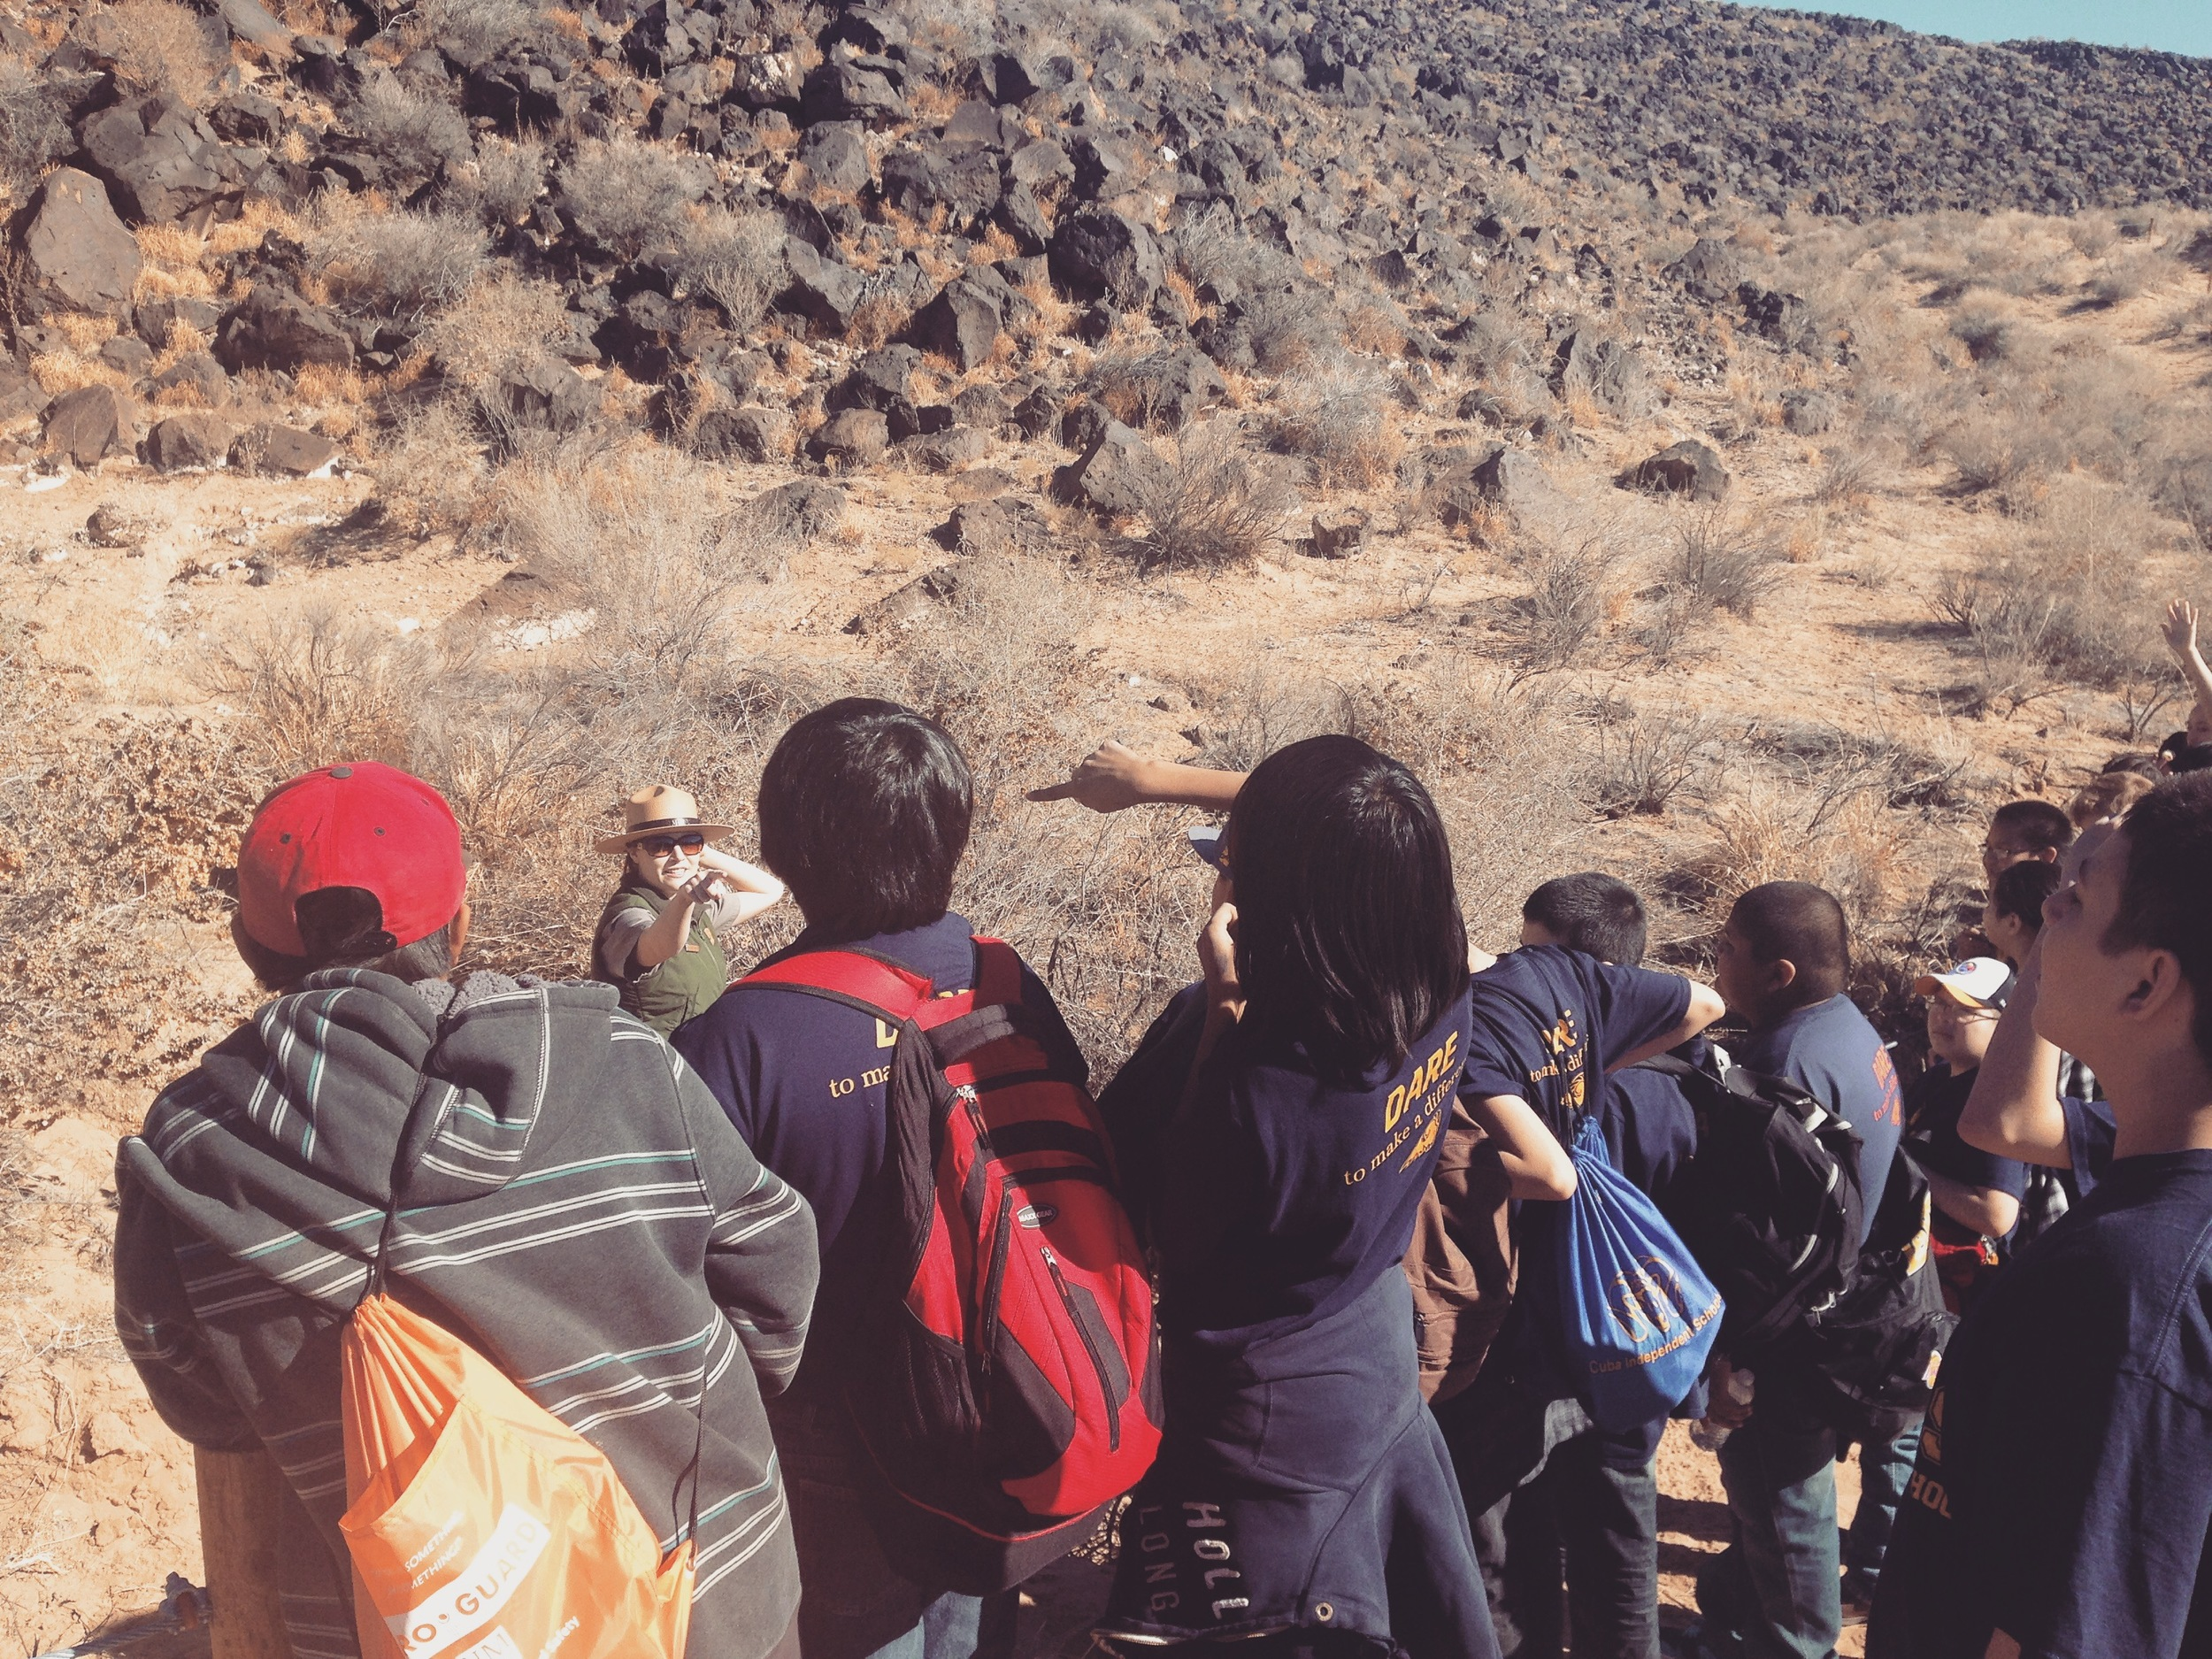 Students point out petroglyphs to one another at the Petroglyph National Monument